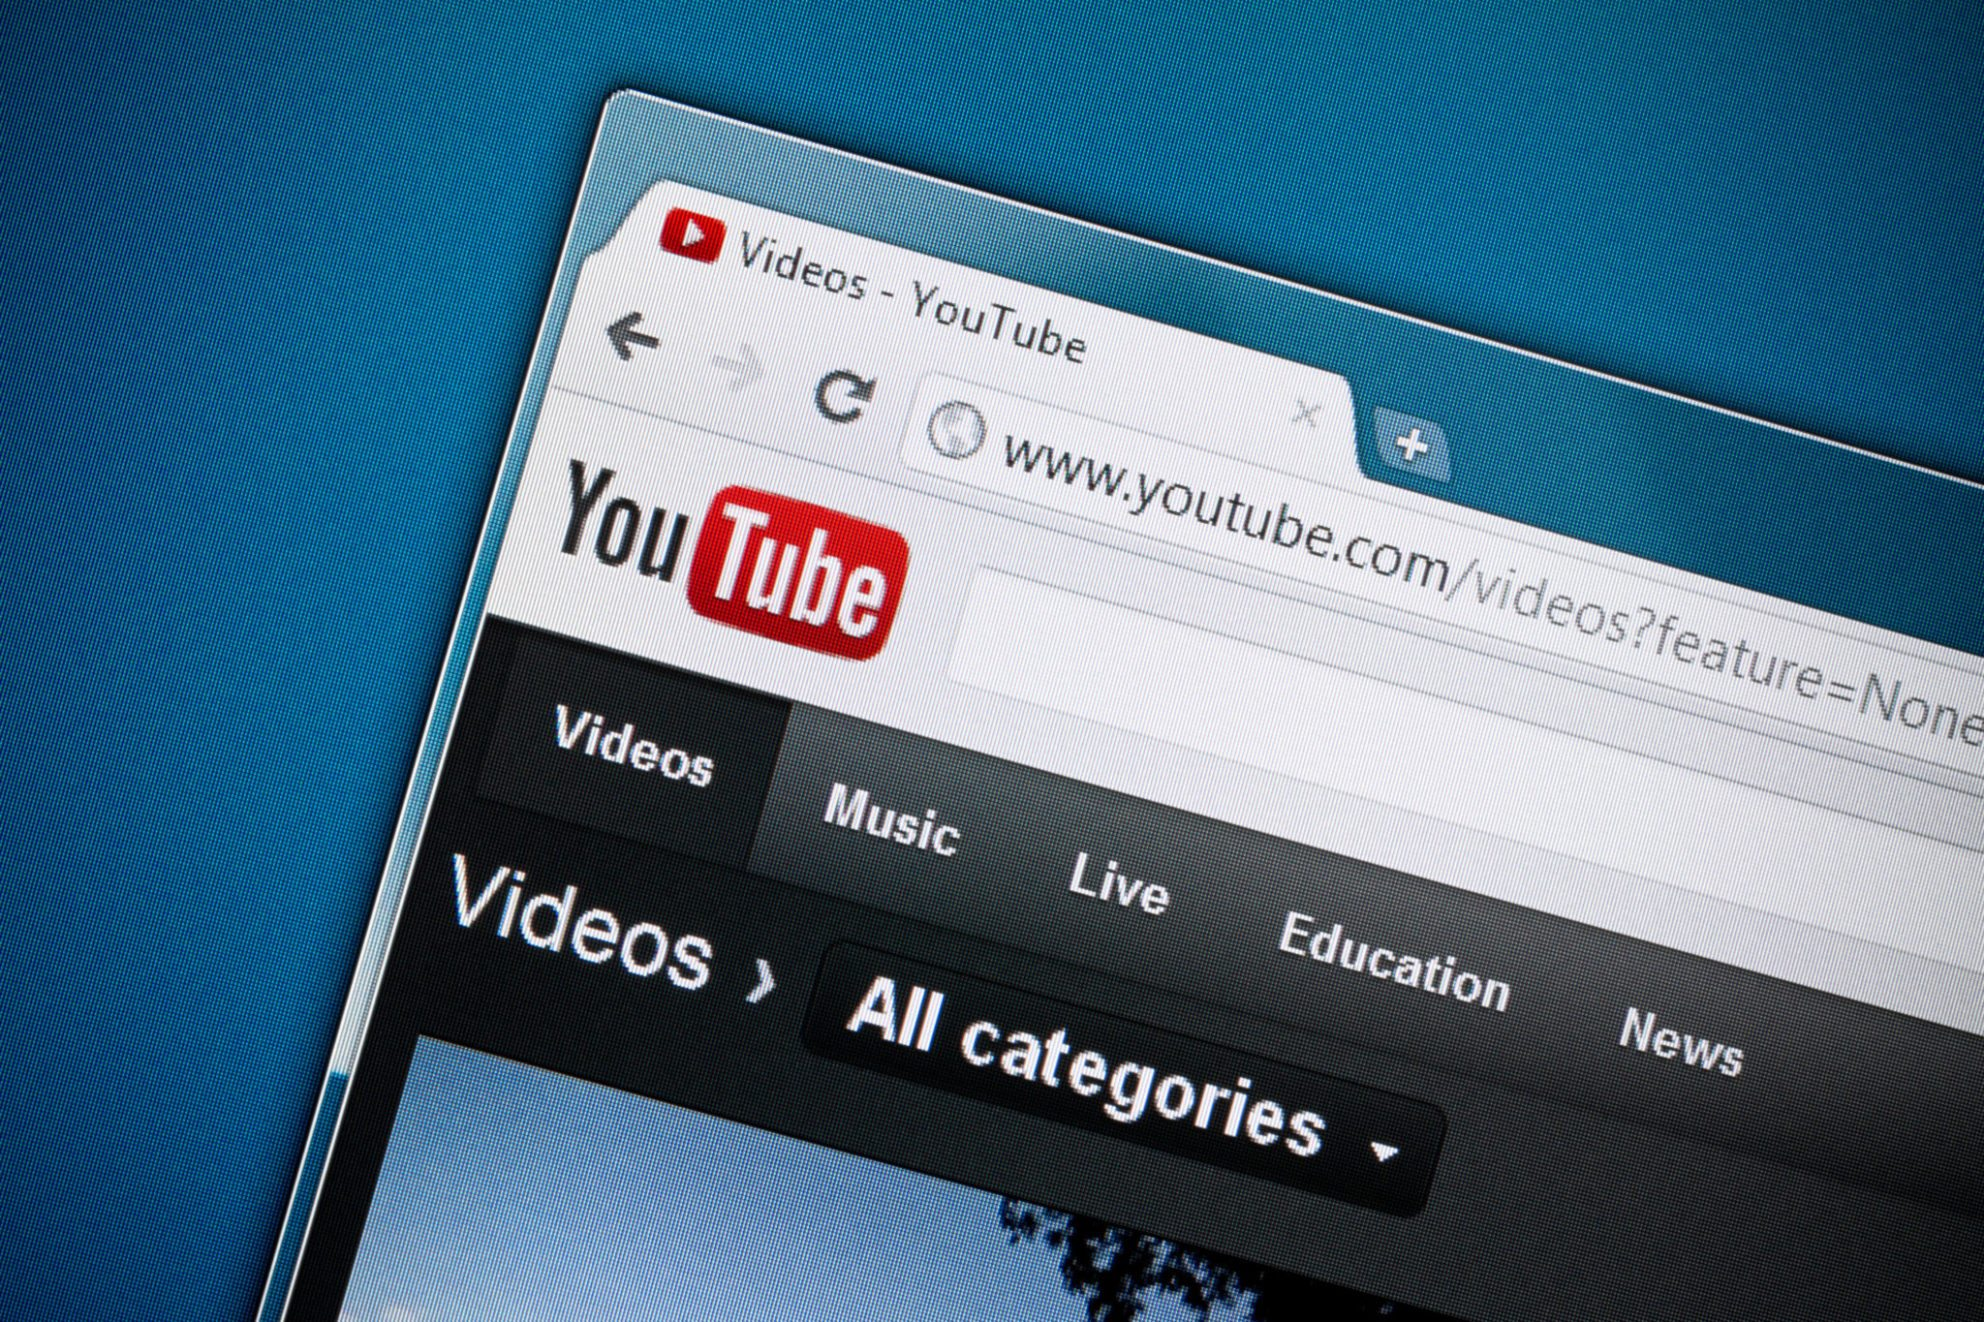 YouTube playlists: a cool way to expose listings